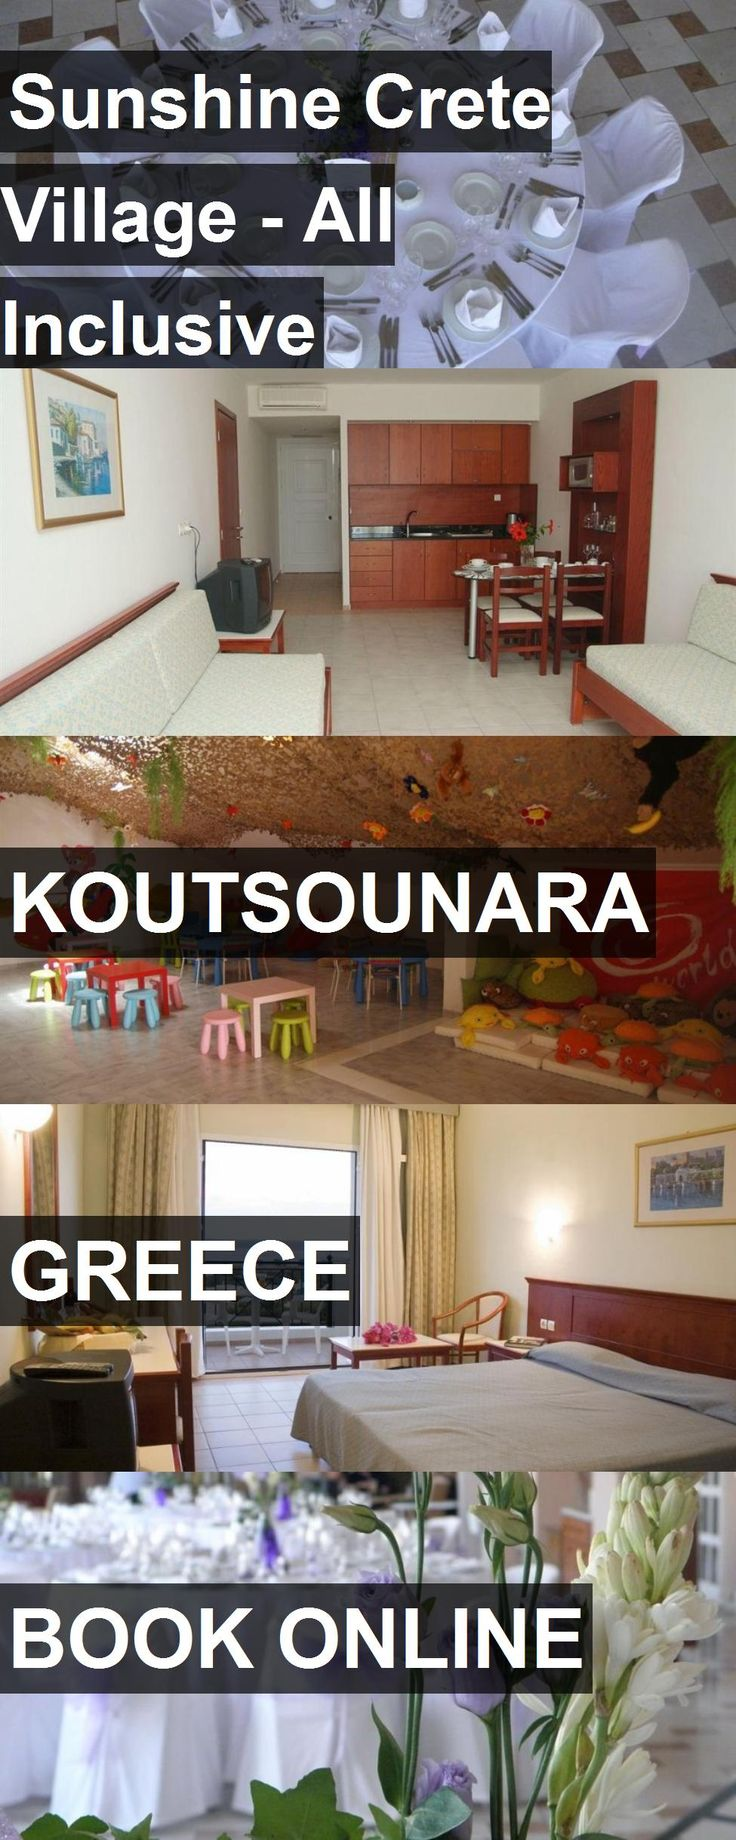 Hotel Sunshine Crete Village - All Inclusive in Koutsounara, Greece. For more information, photos, reviews and best prices please follow the link. #Greece #Koutsounara #SunshineCreteVillage-AllInclusive #hotel #travel #vacation